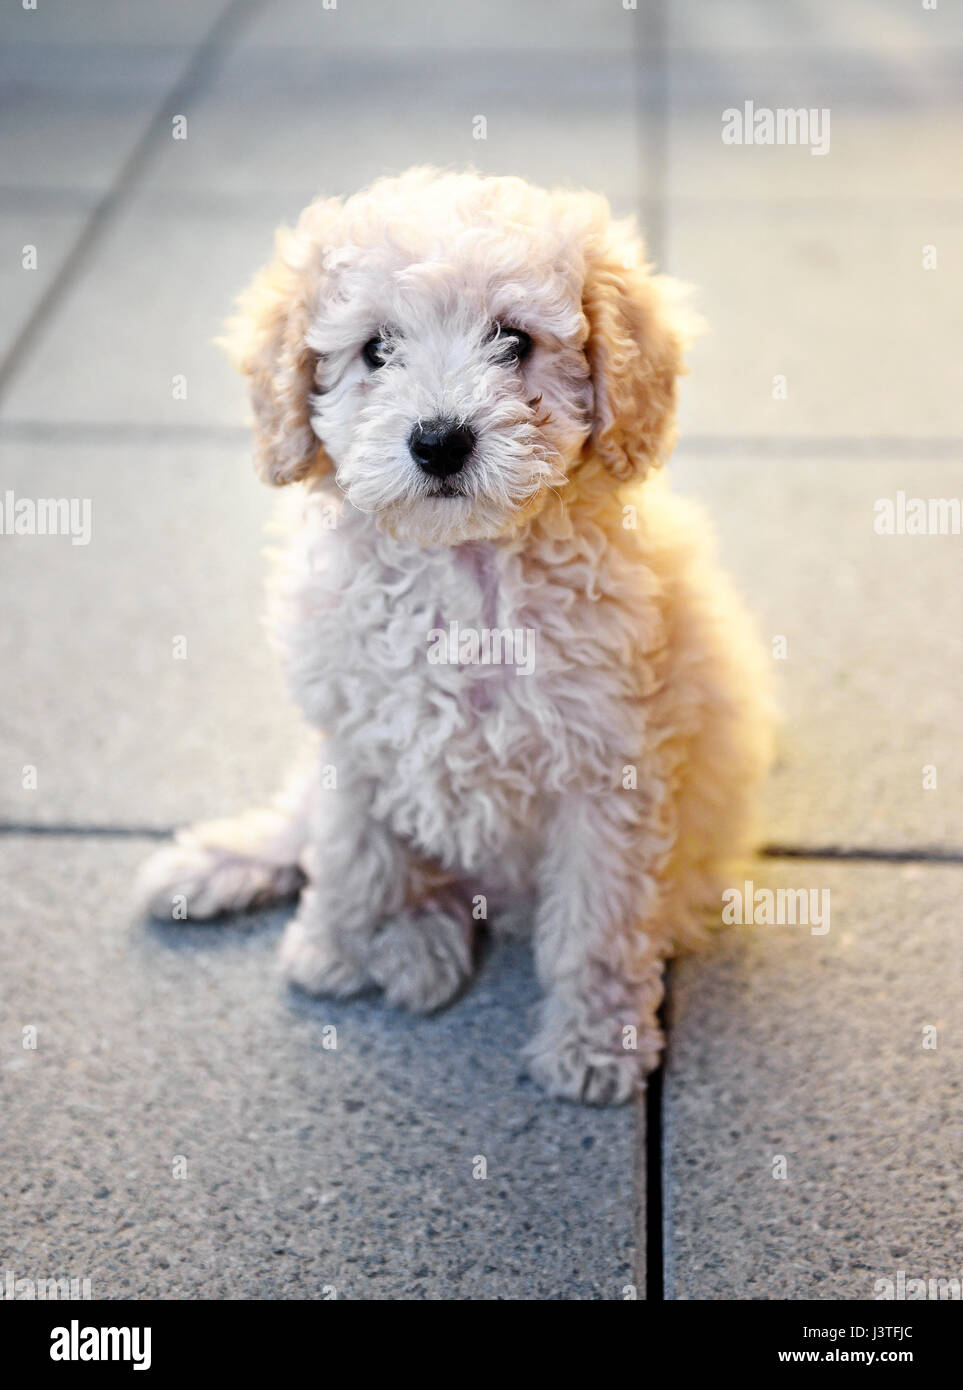 Small little fluffy golden toy poodle puppy sitting on grey tiles looking calmly at the camera in a close up view - Stock Image